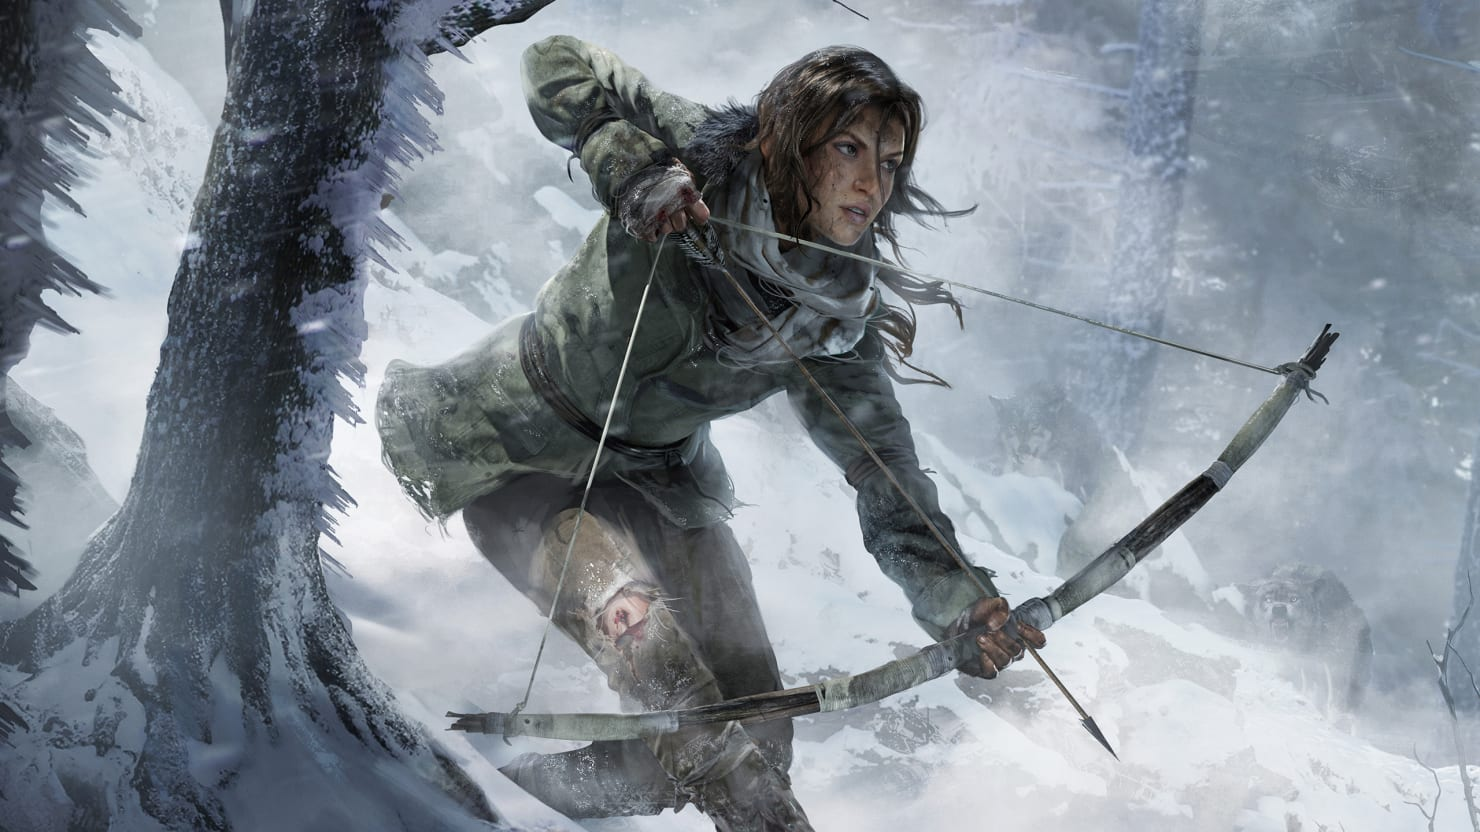 'Rise of the Tomb Raider' Humanizes Lara Croft for Her Biggest, Boldest Adventure Yet